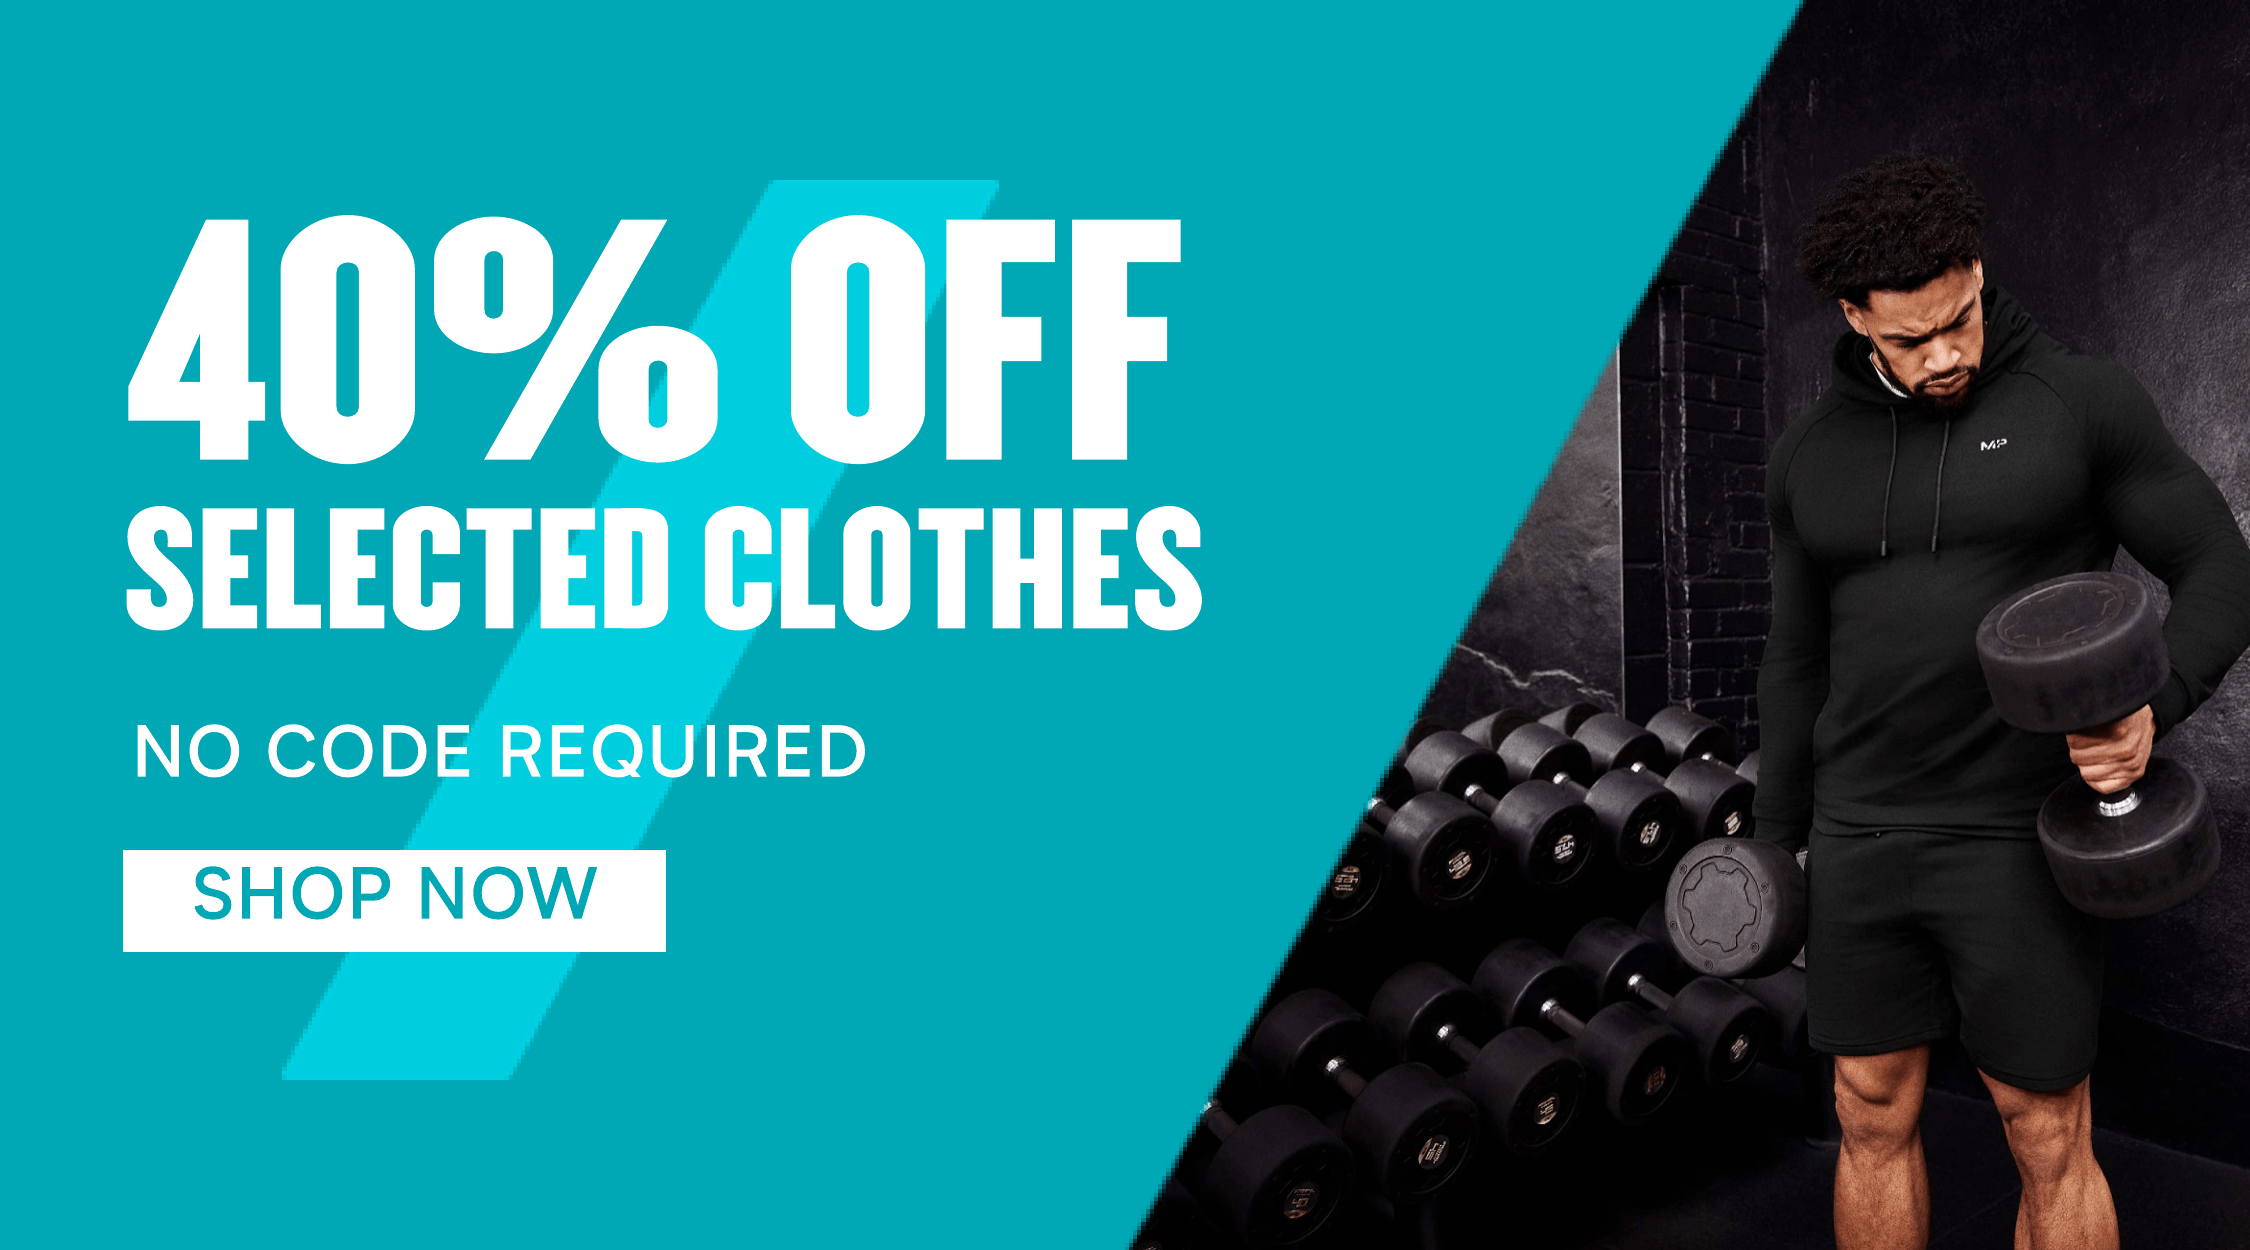 40% off selected clothes